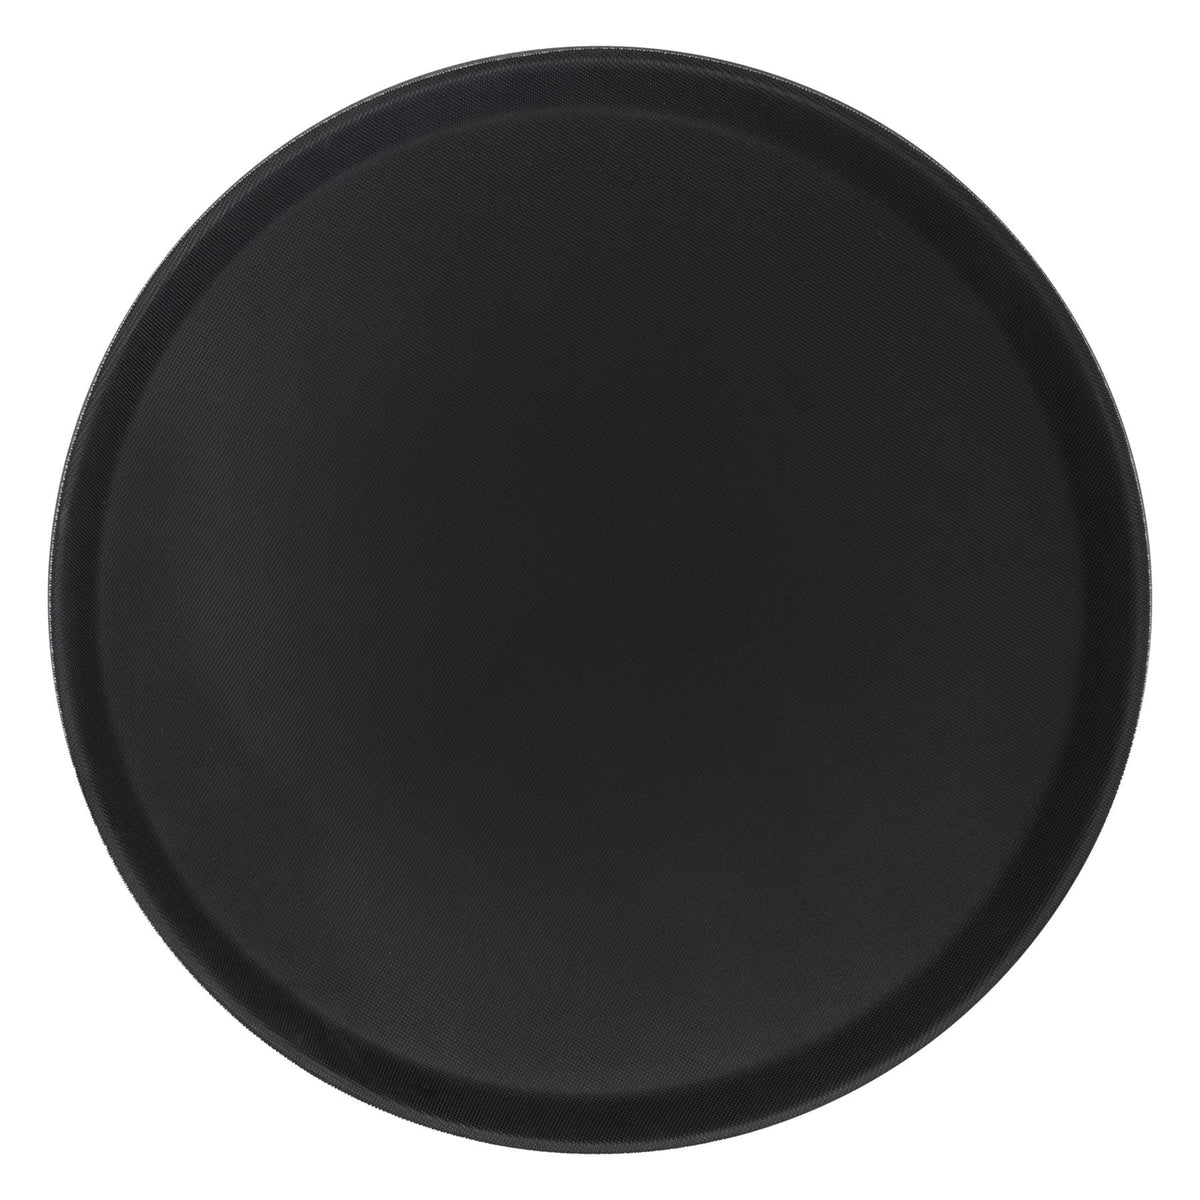 "Argon Tableware Circular Non-Slip Serving Tray - 35cm (14"")"